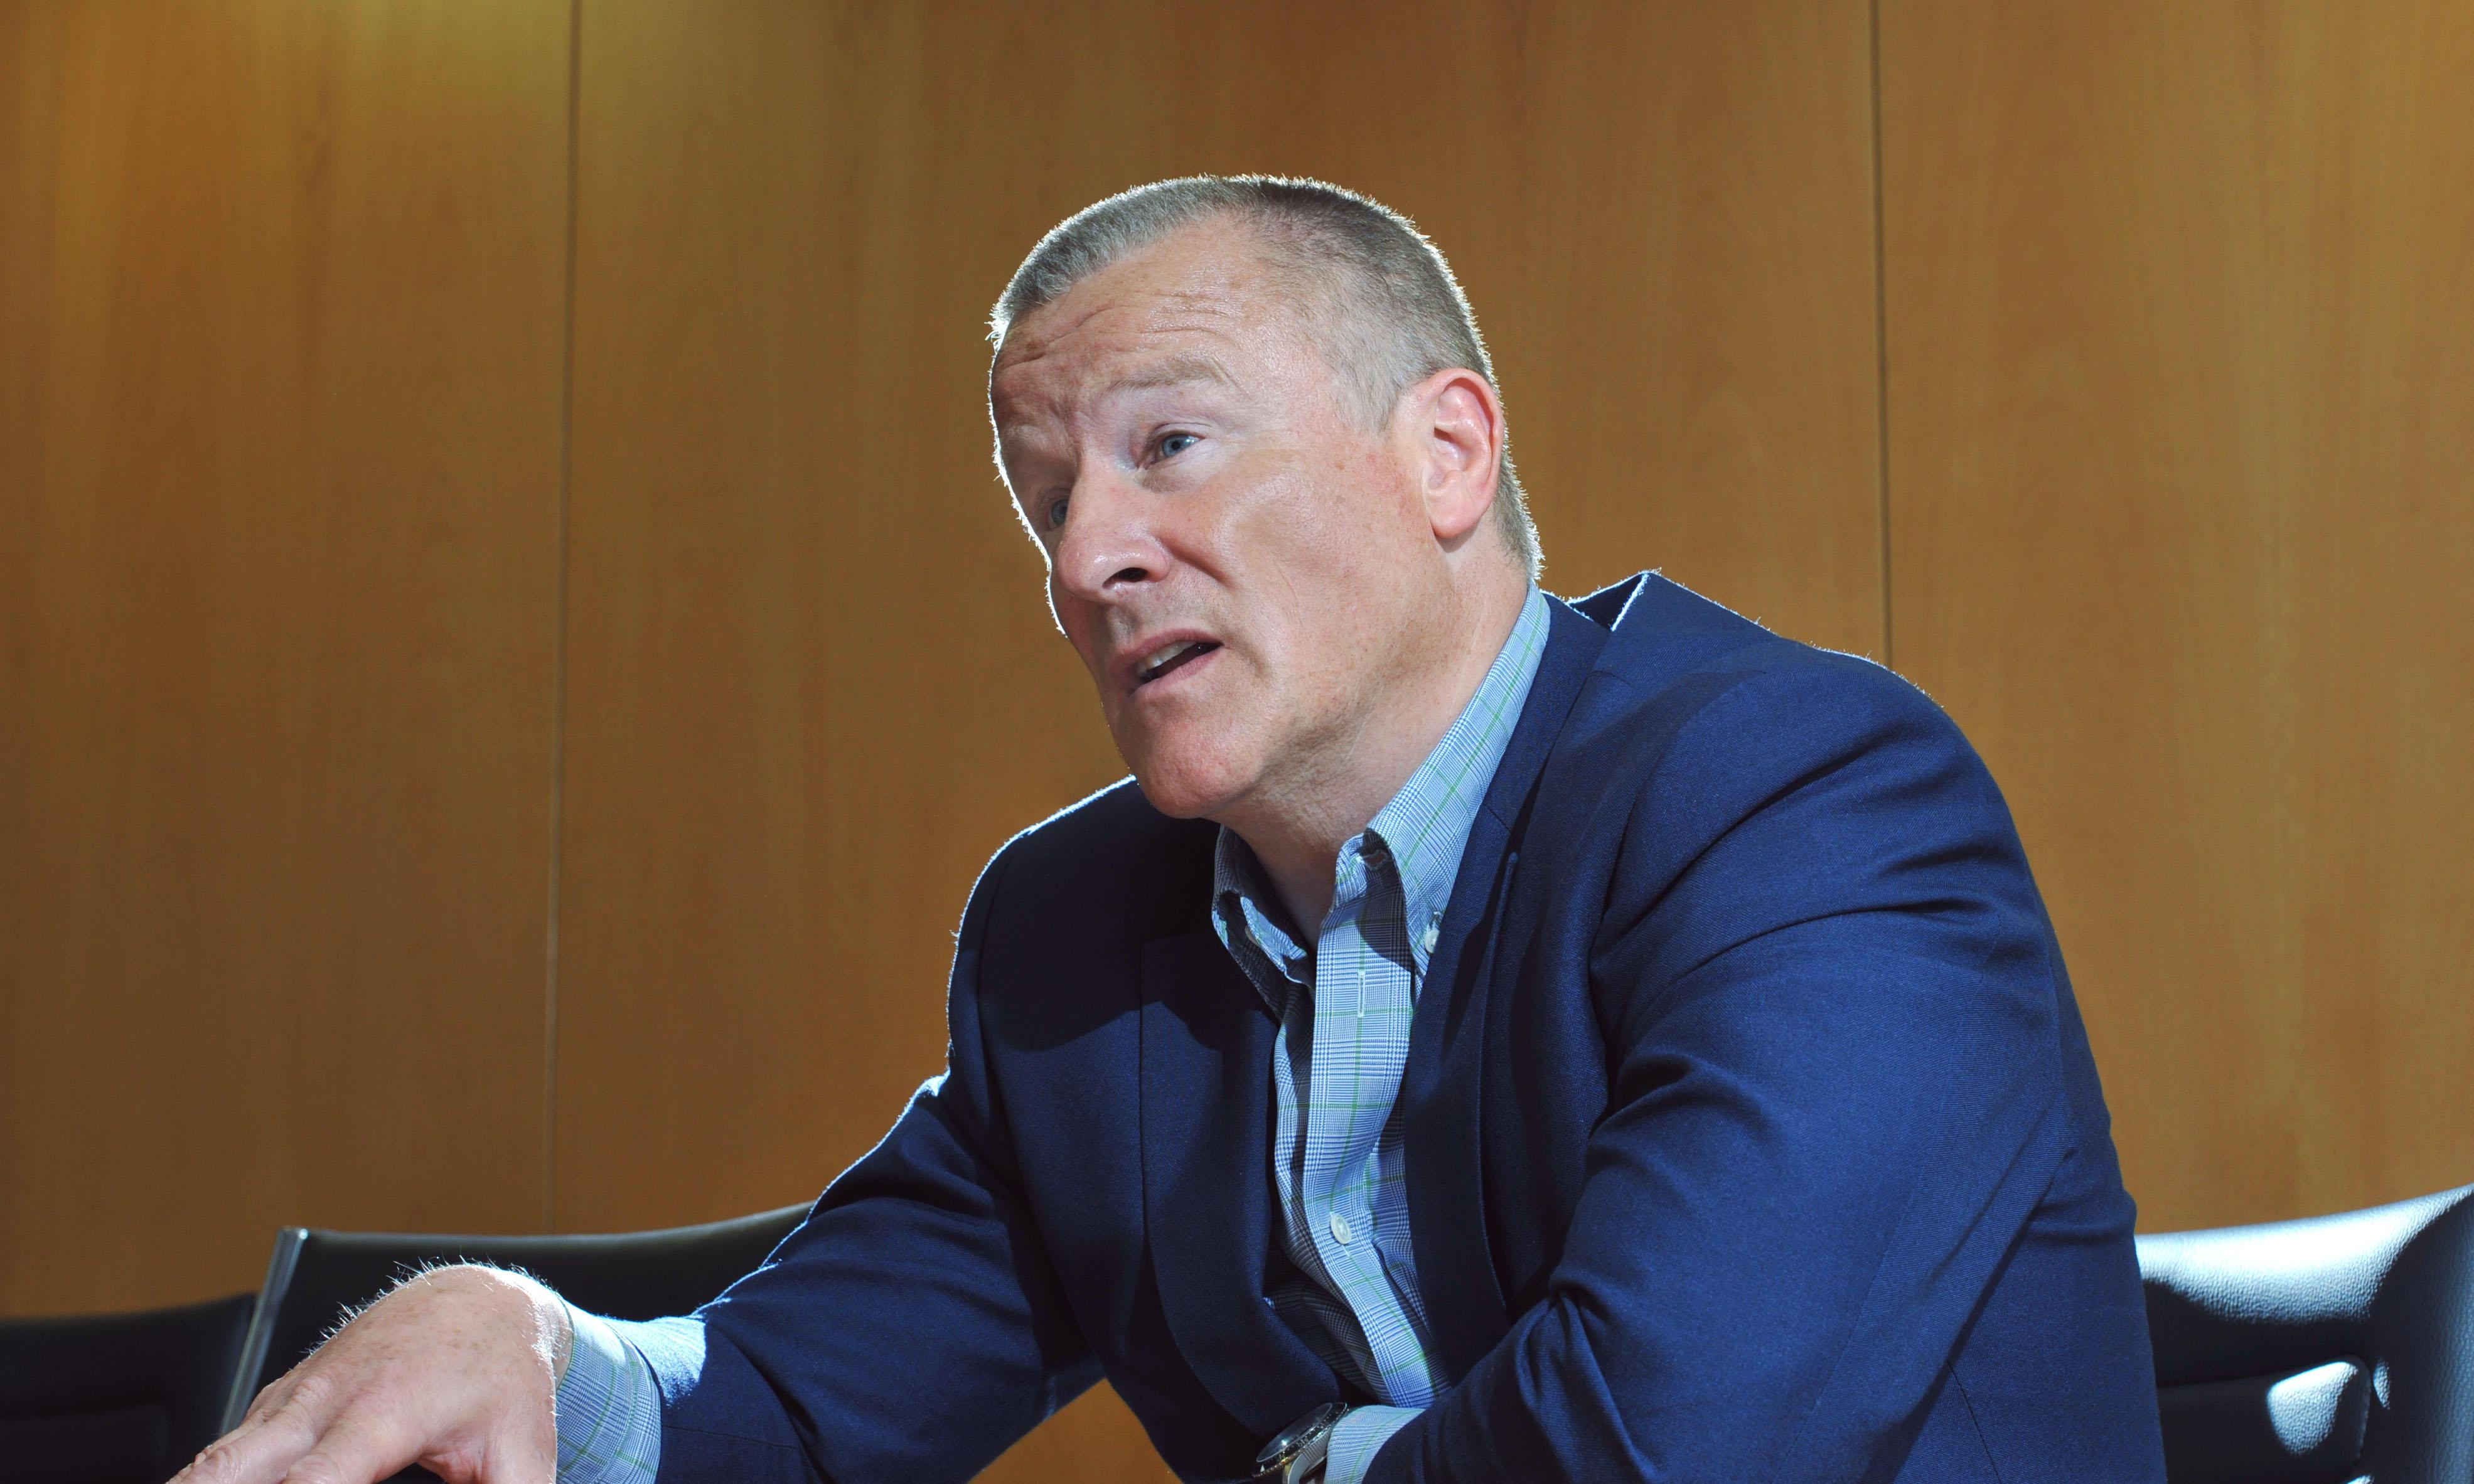 Neil Woodford buying up FTSE 100 shares after fund suspension